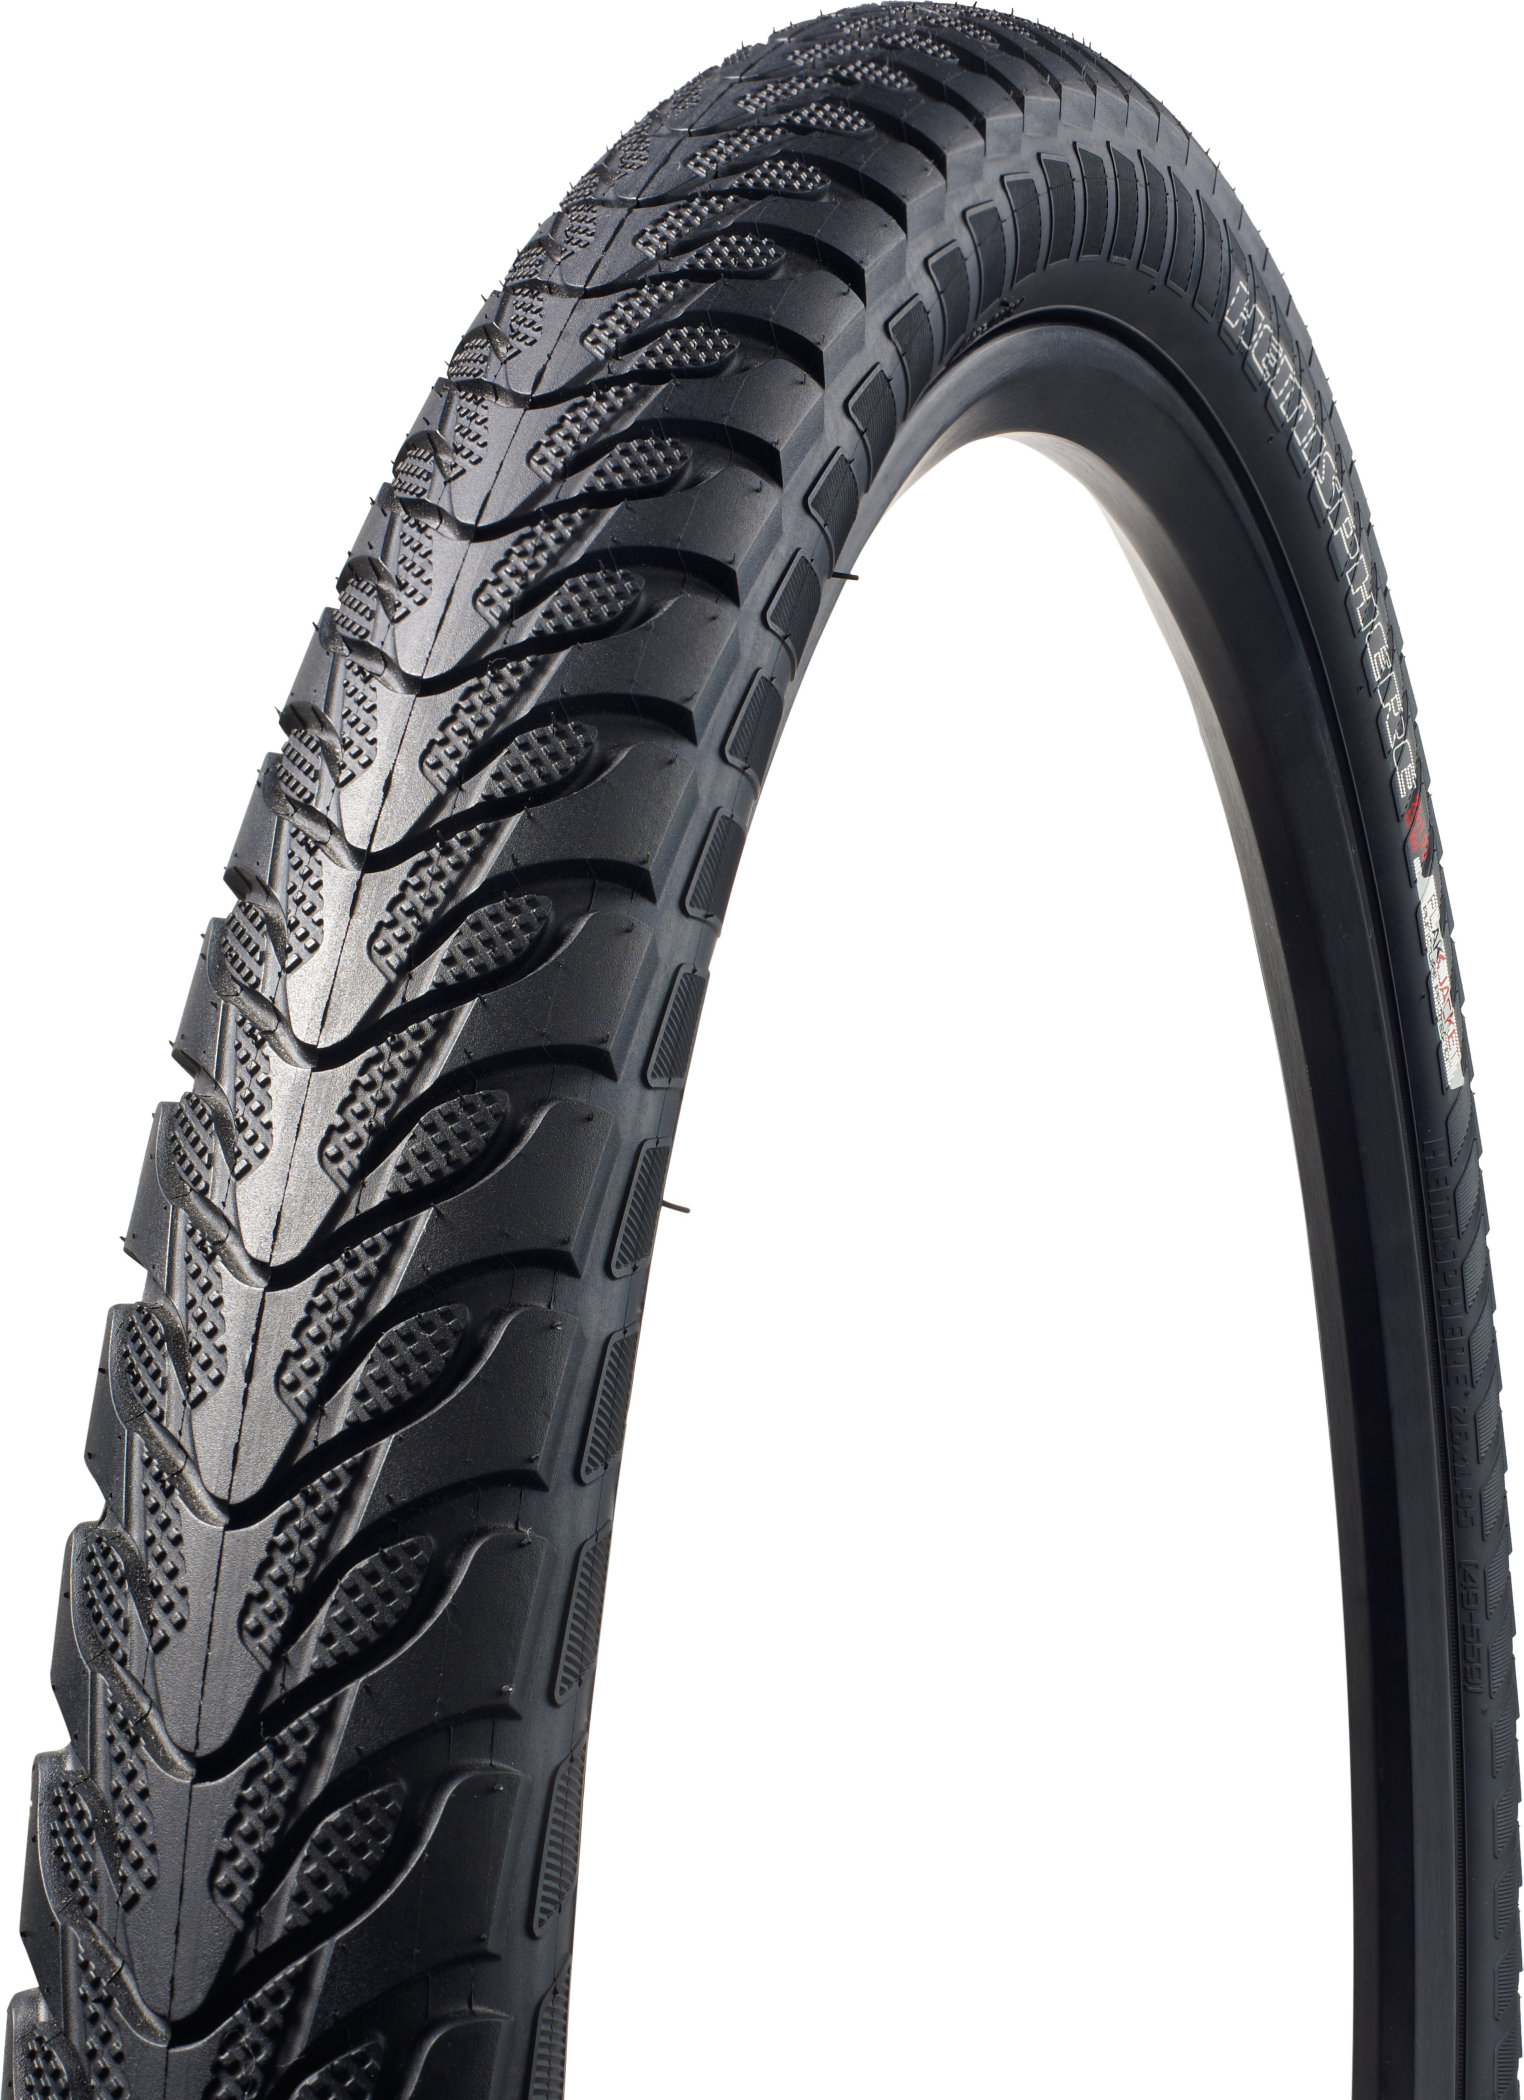 SPECIALIZED HEMISPHERE ARM REFLECT TIRE 700X38C - SPECIALIZED HEMISPHERE ARM REFLECT TIRE 700X38C